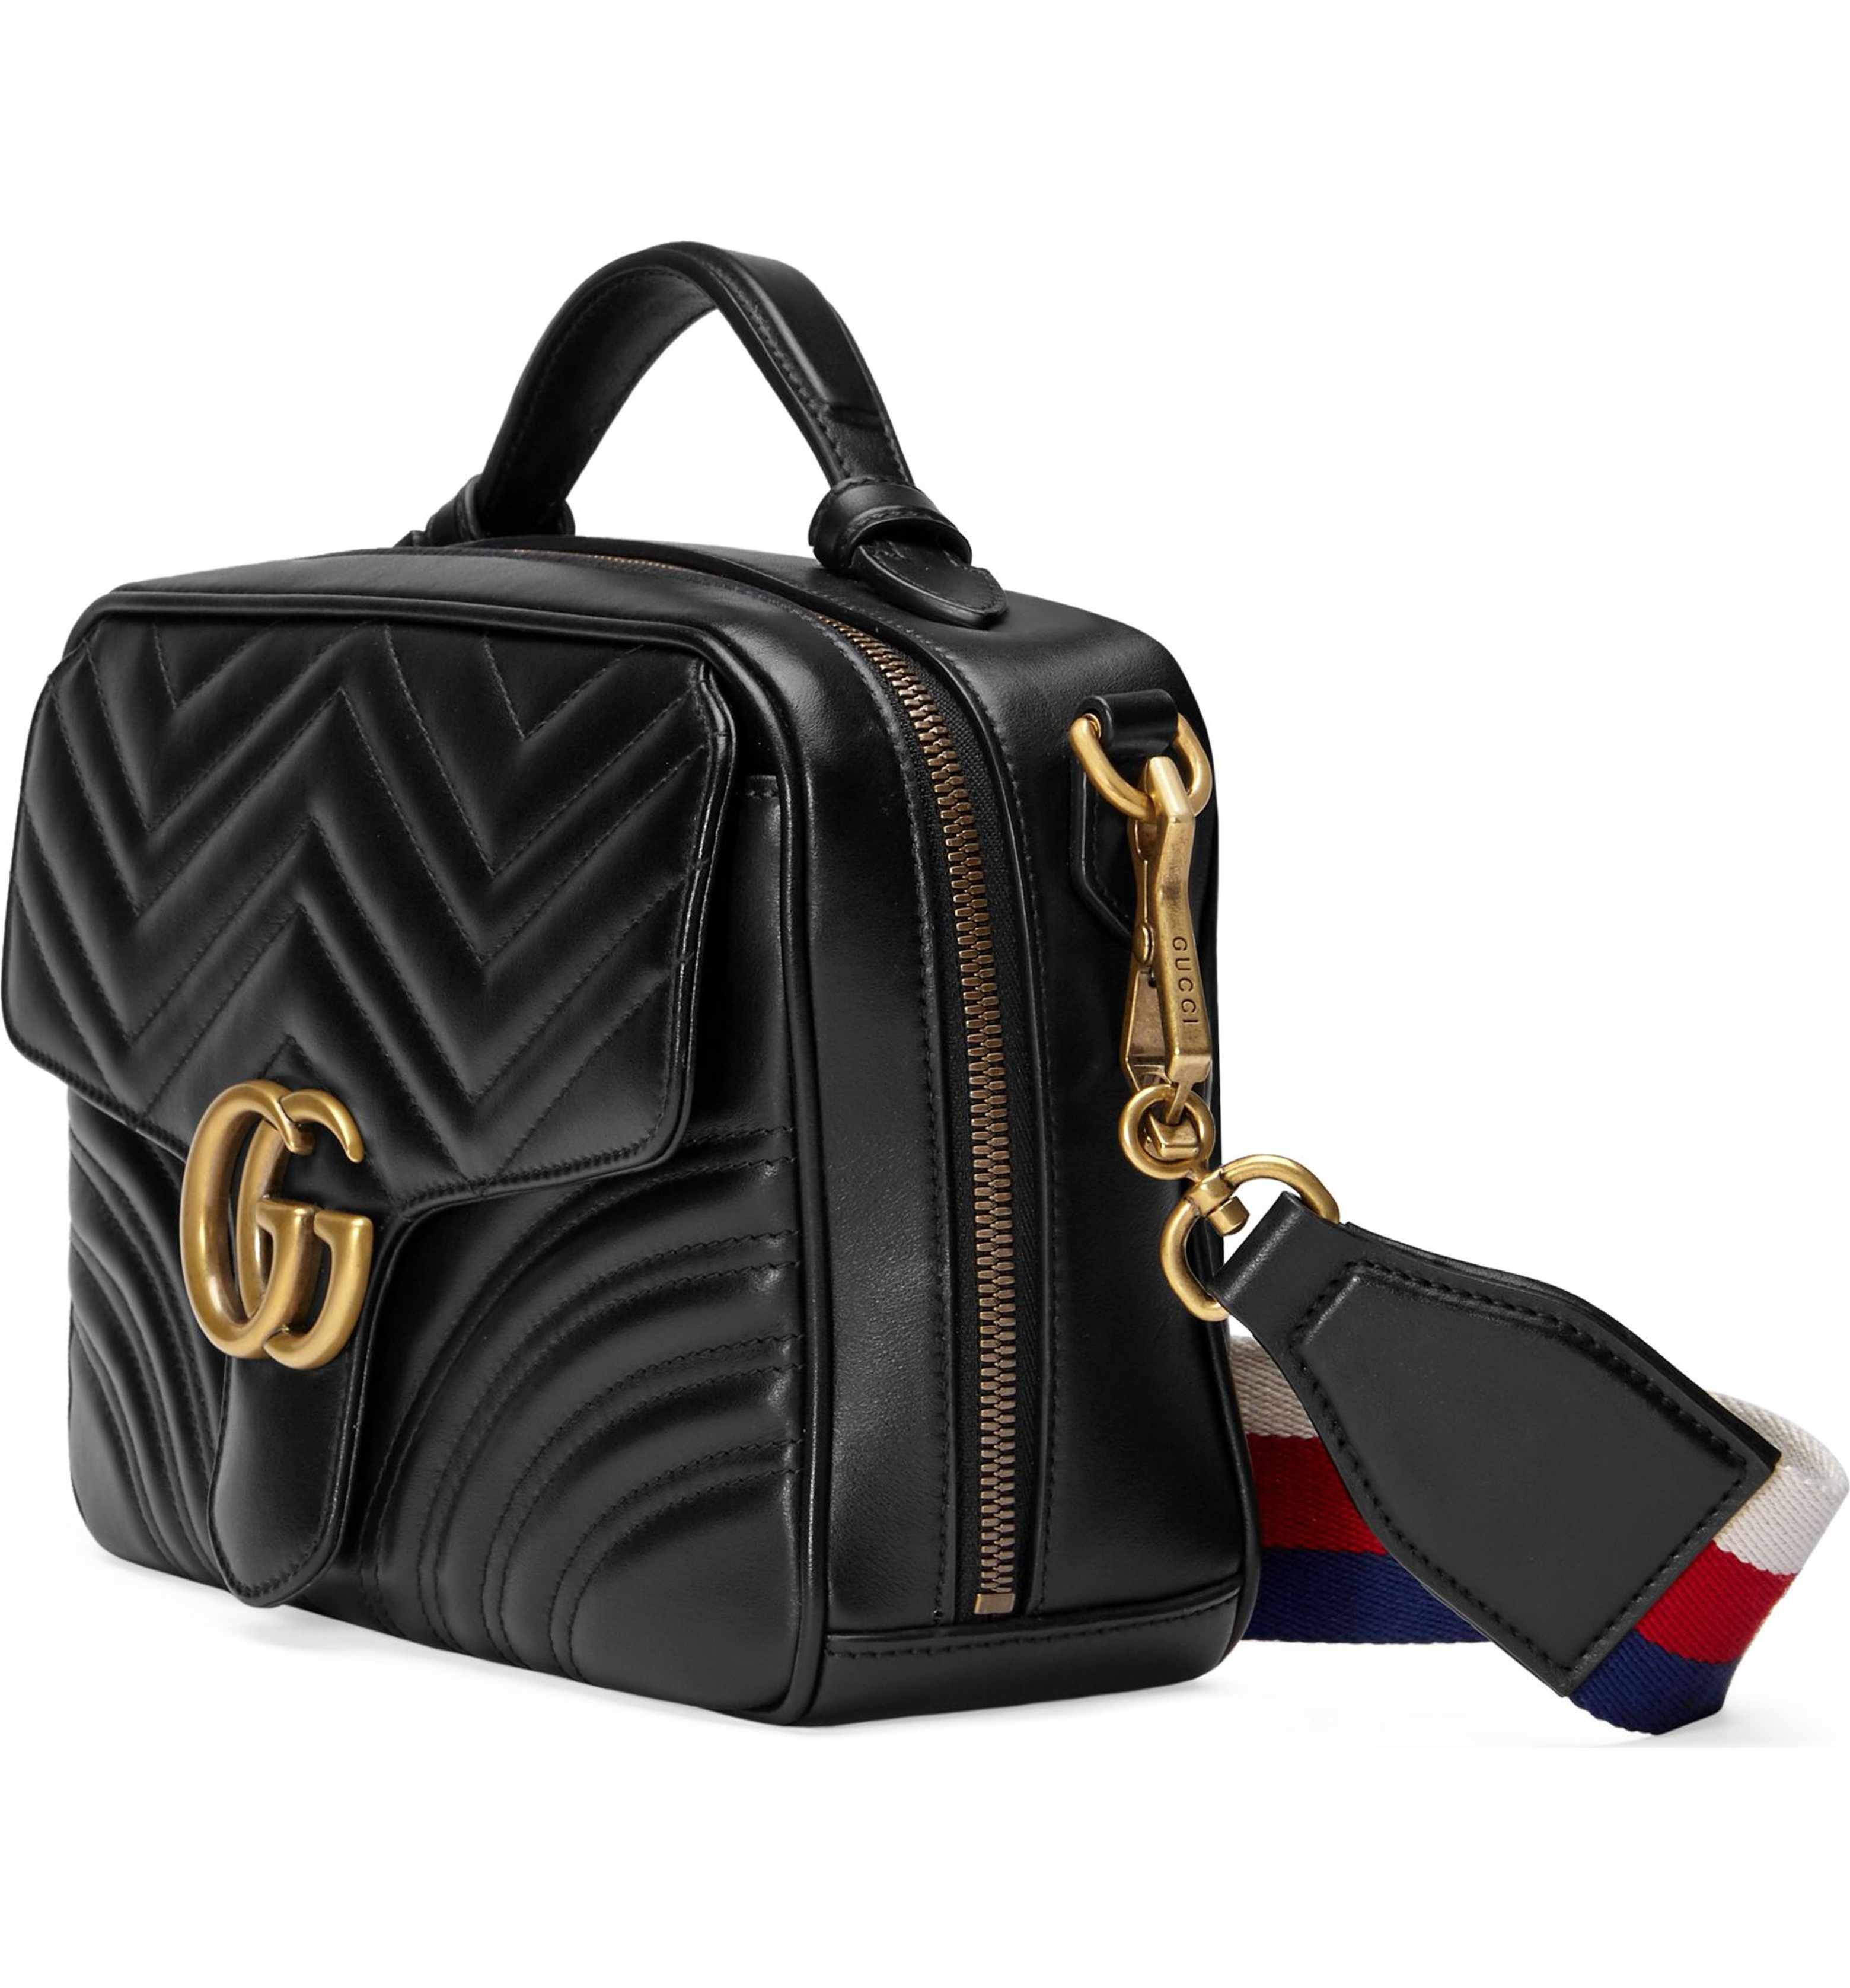 f799e18912ec1c Main Image - Gucci Small GG Marmont 2.0 Matelassé Leather Camera Bag with  Webbed Strap